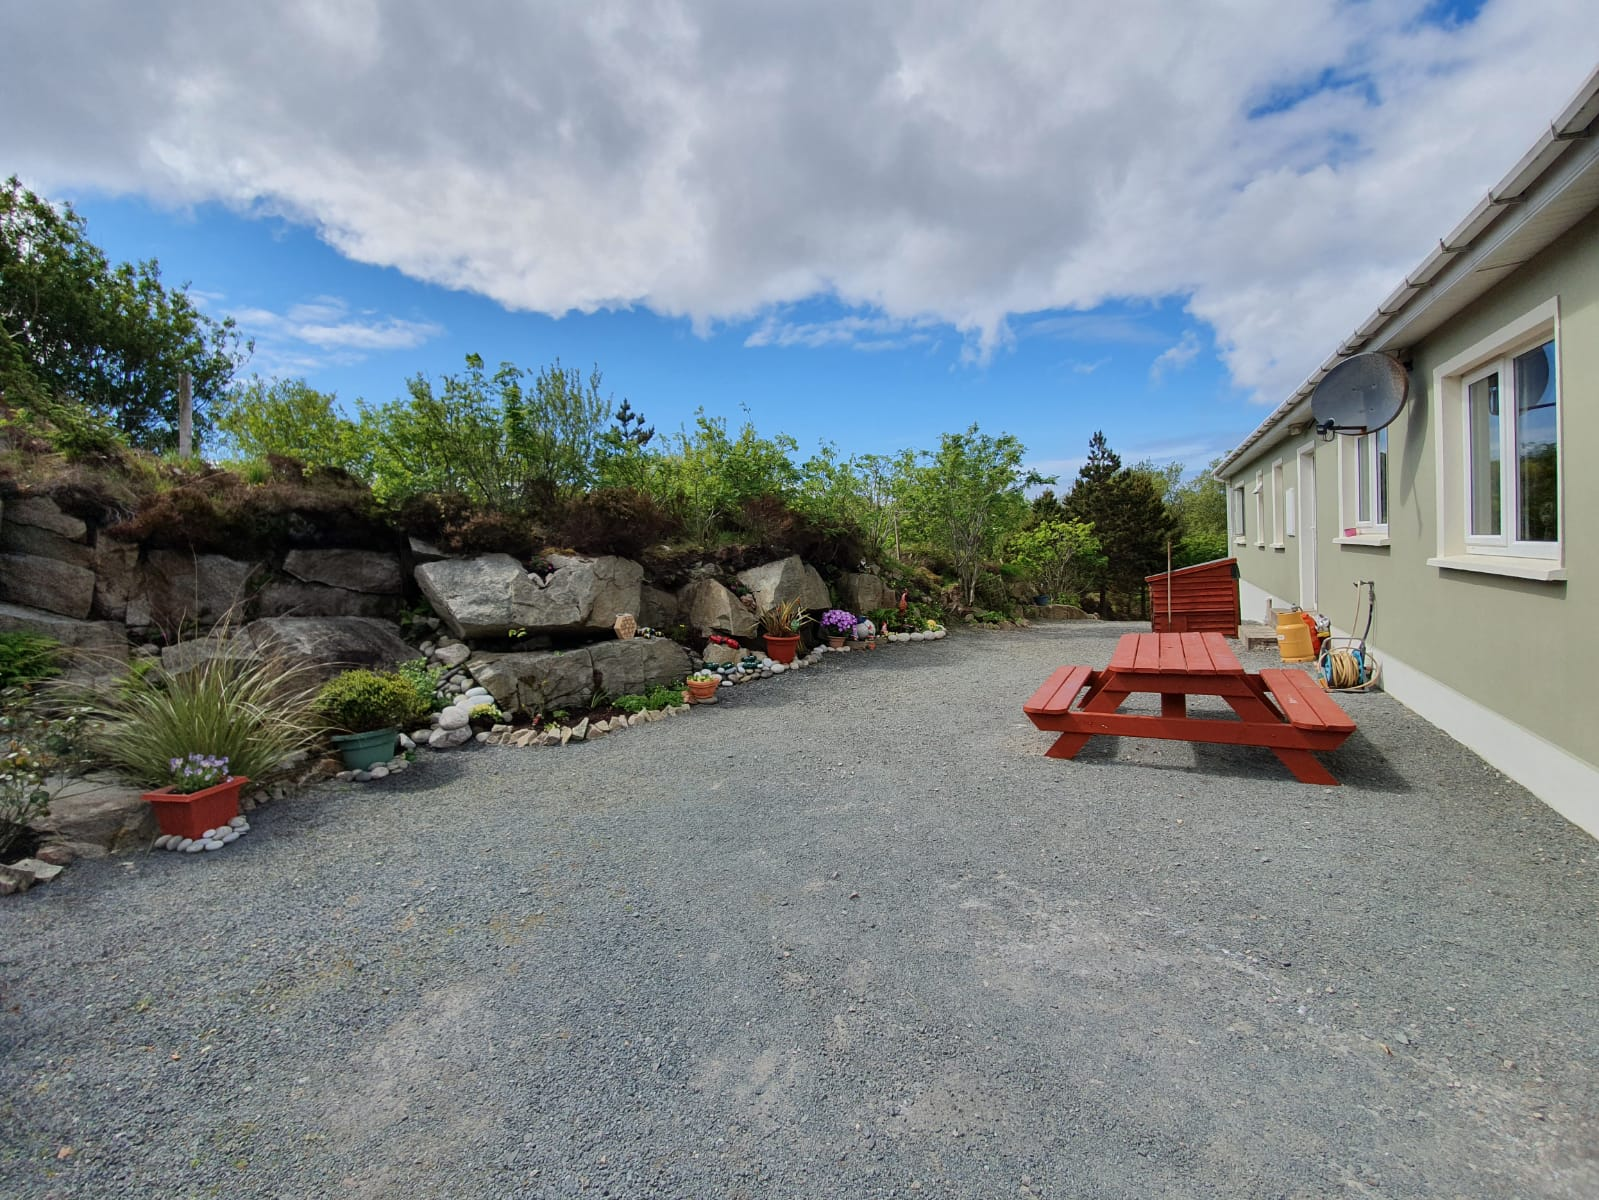 Mullis - Ext. rare of house with garden seat and rockery